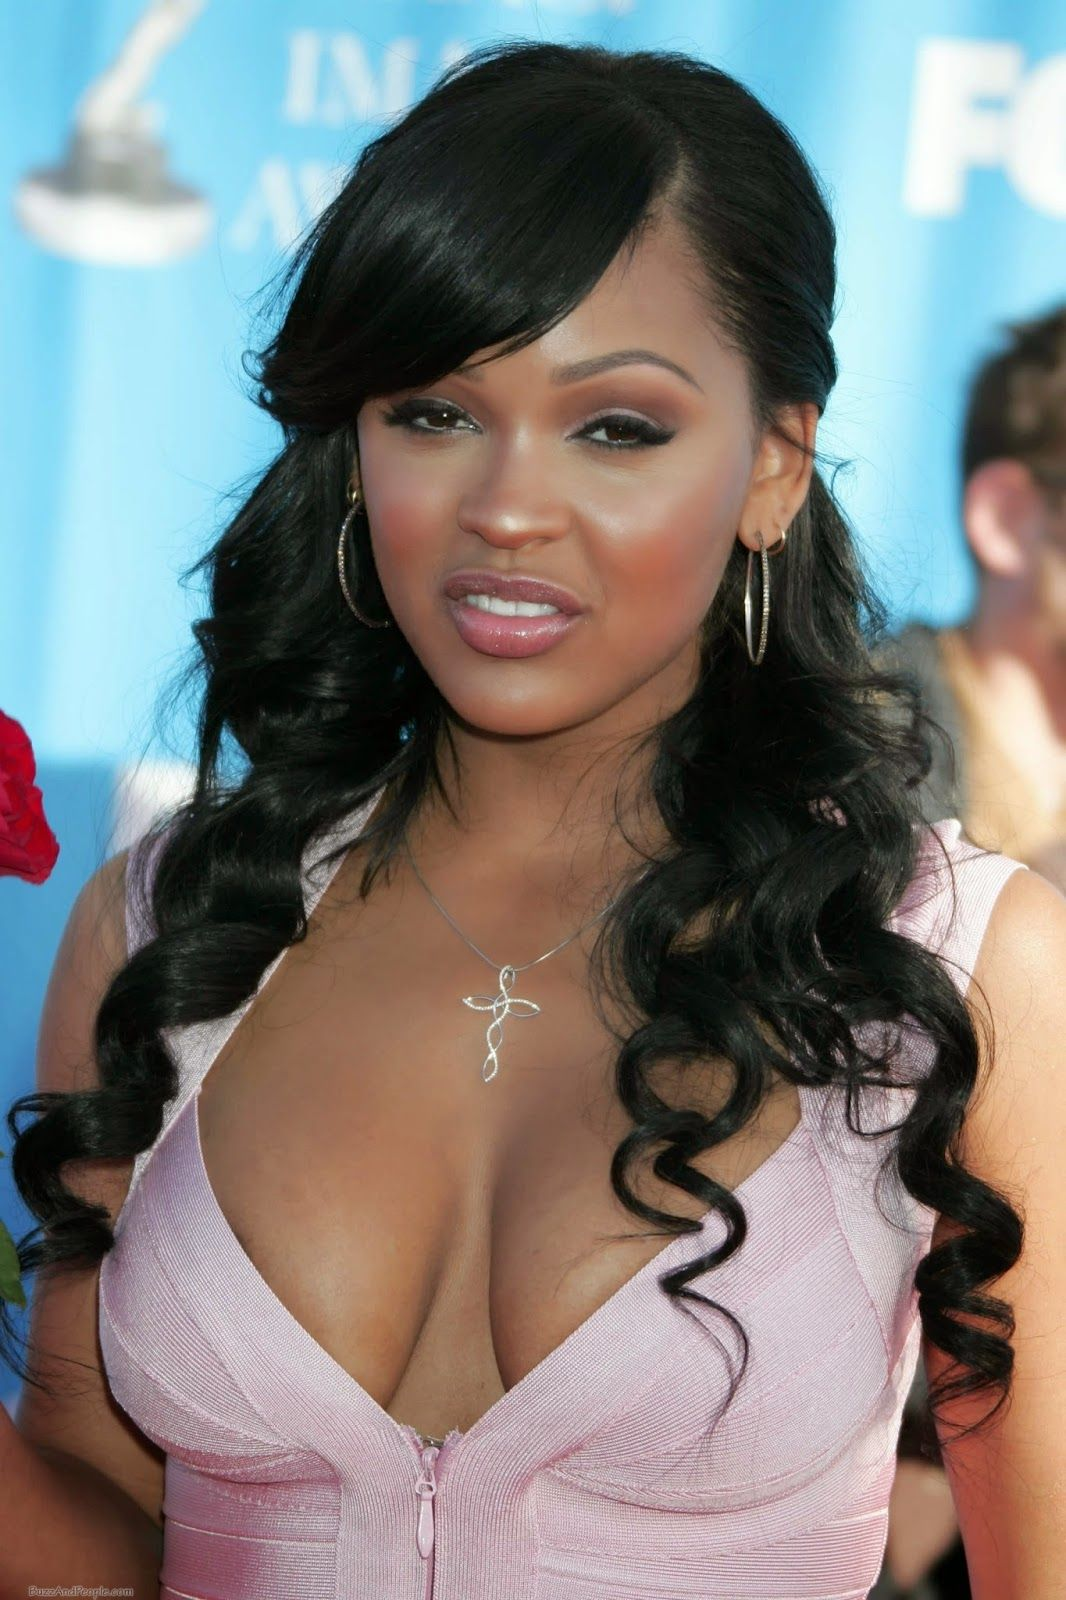 Chatter Busy Meagan Good Naked Photos Leaked